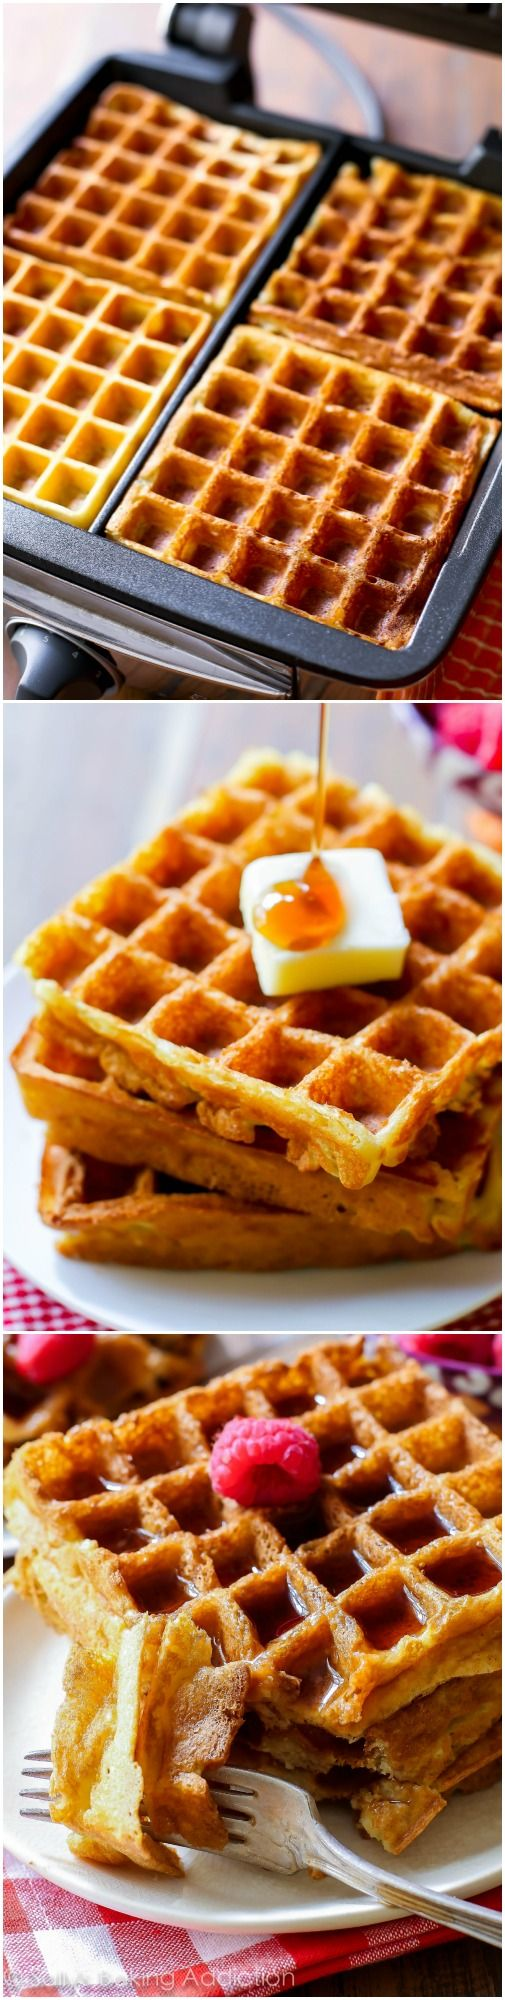 Buttermilk Waffles on Pinterest | Belgian Waffles, Best Waffle Recipe ...